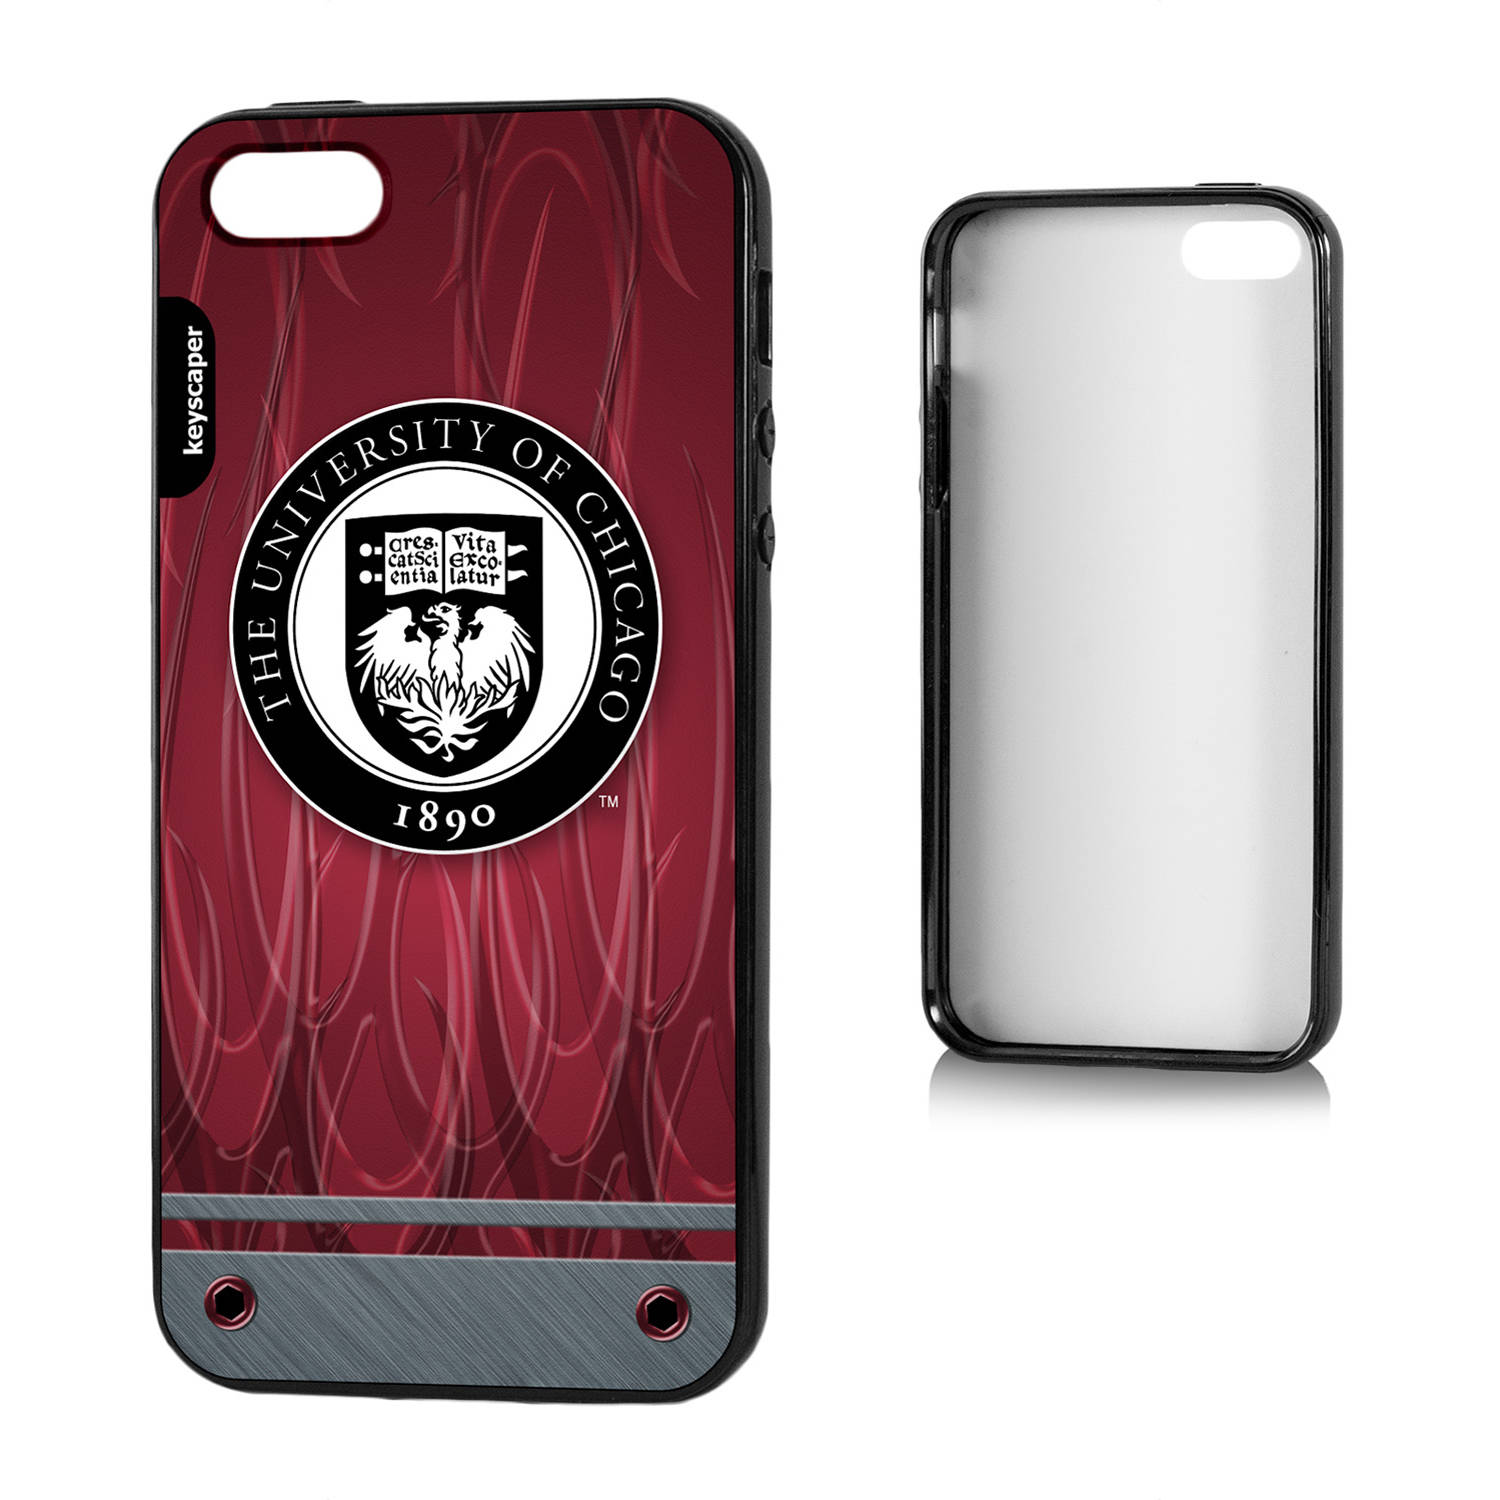 Chicago Apple iPhone 5/5s Bumper Case